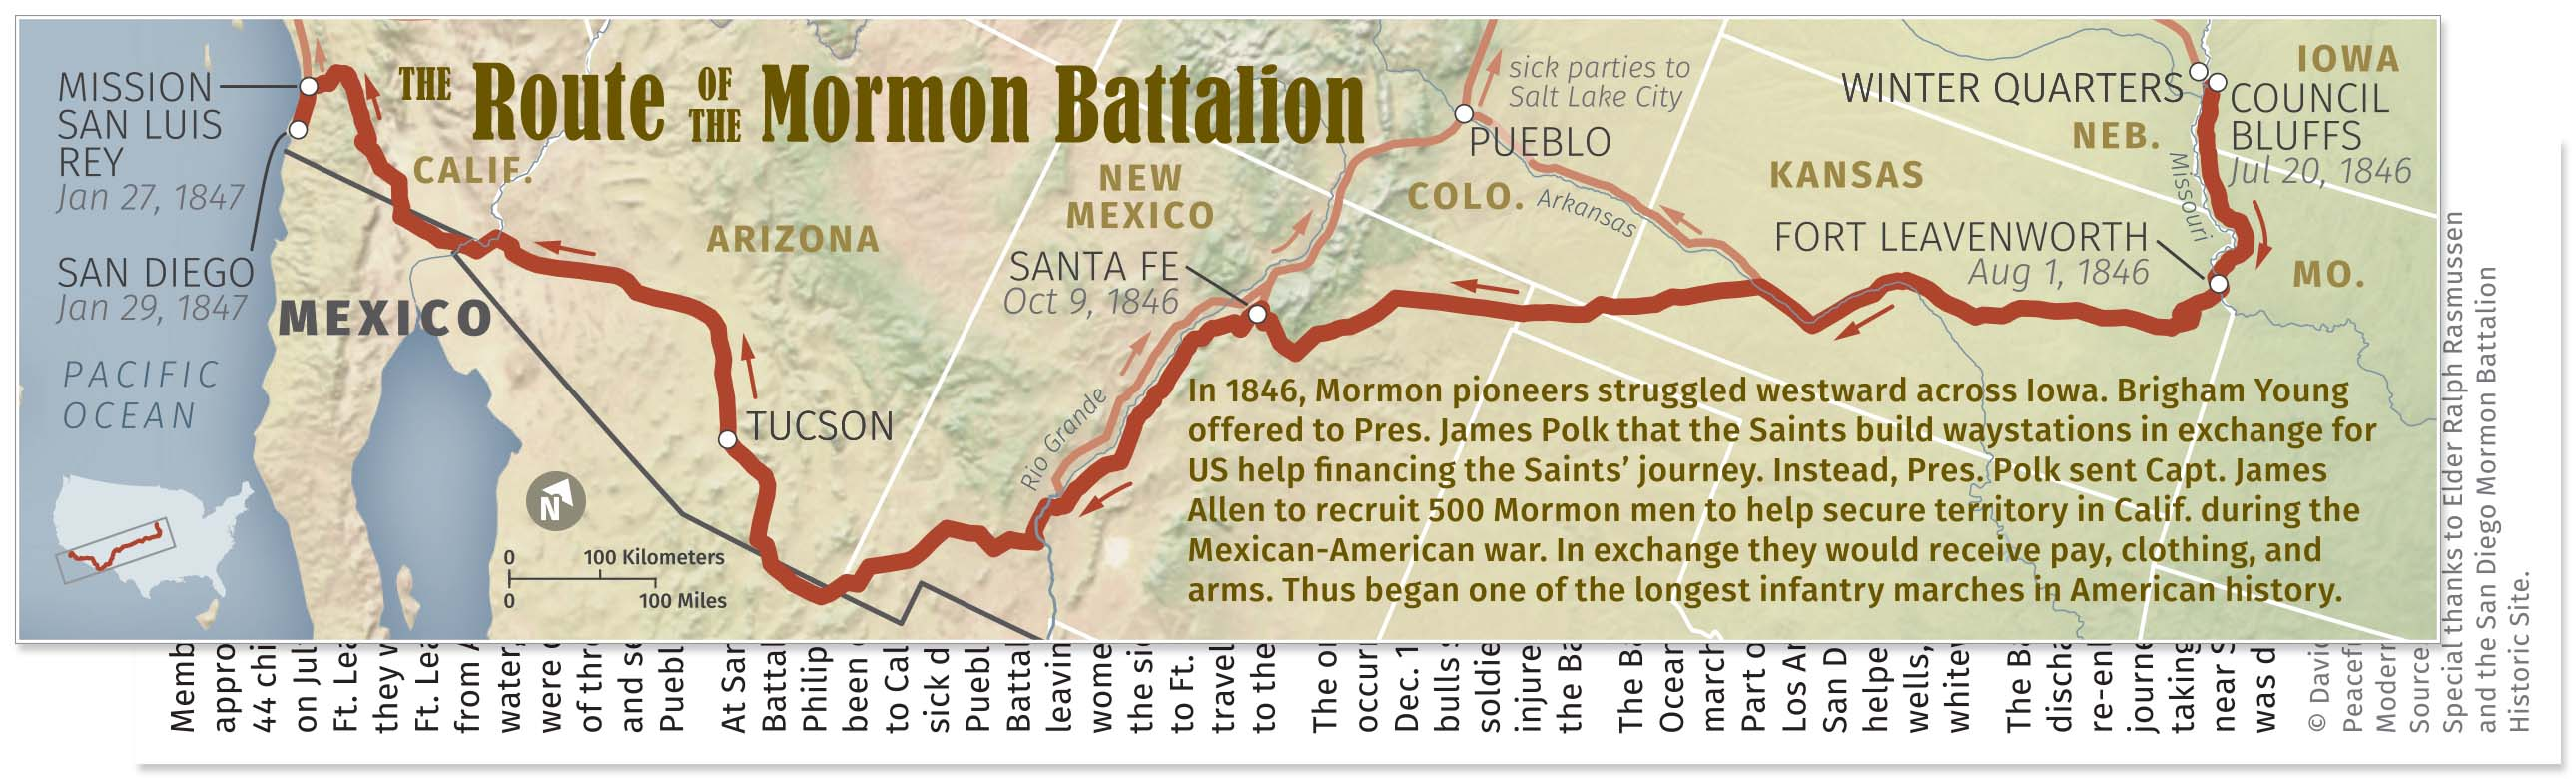 0002 Mormon Battalion Visitors Center Map Bookmark W Back Expan